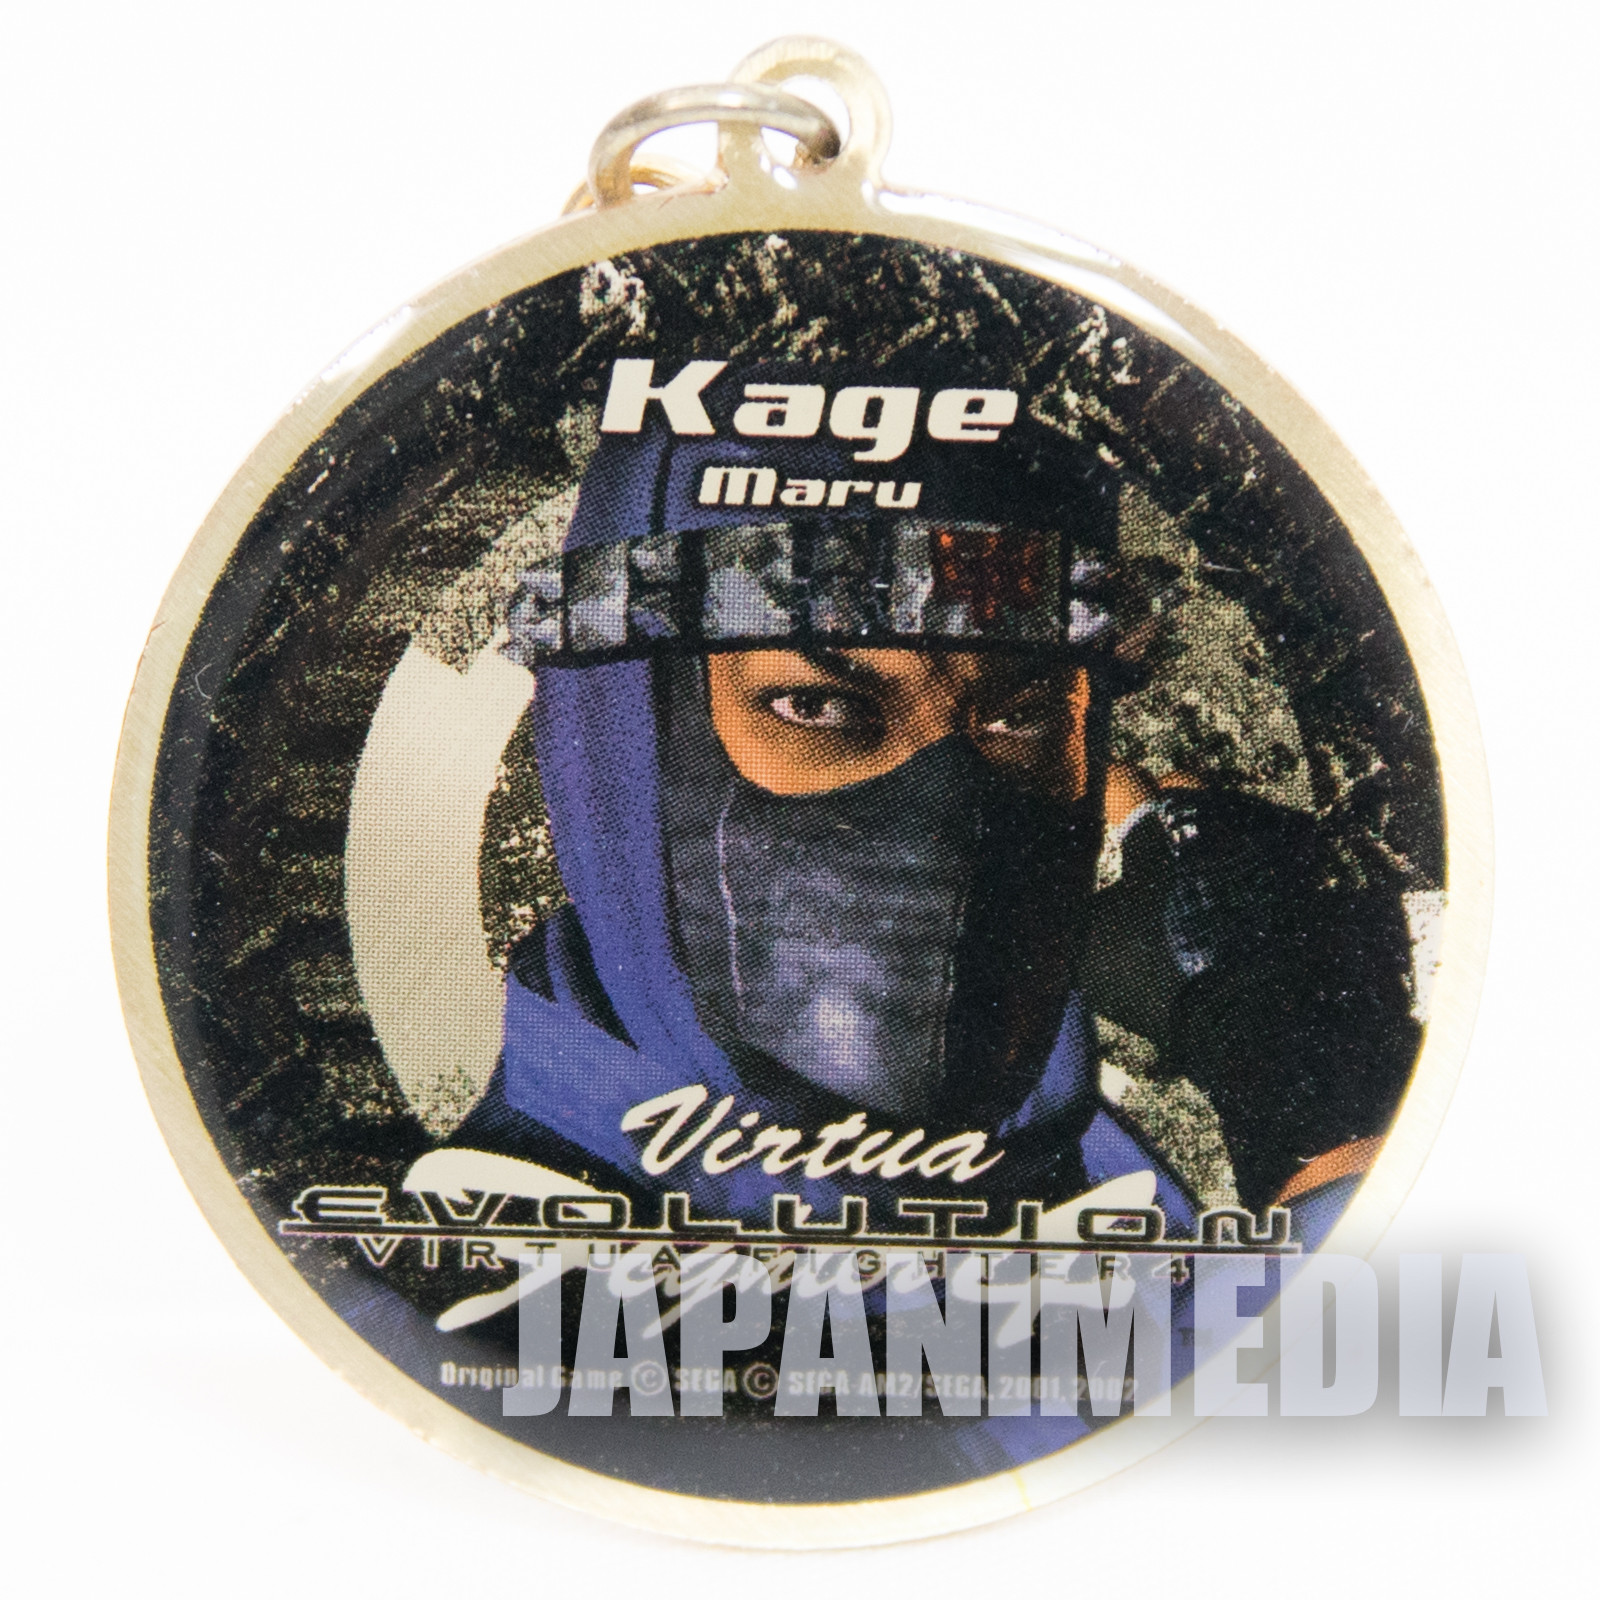 Virtua Fighter 4 Kagemaru Metal Mascot Charm JAPAN GAME SEGA